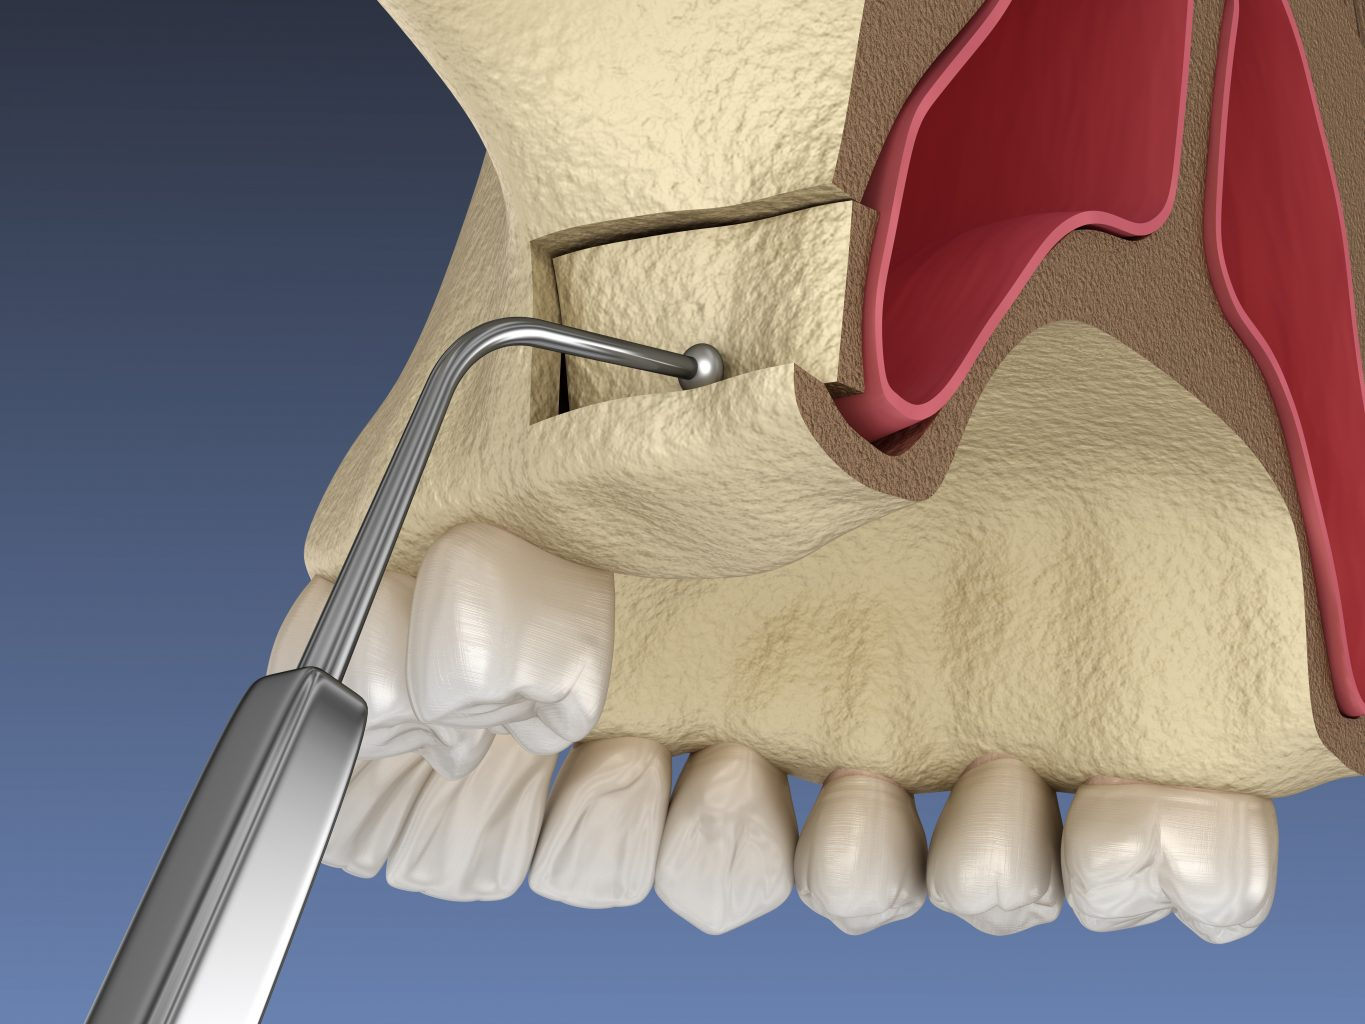 sinus lift surgery creating side access to the sinus. 3d illustration